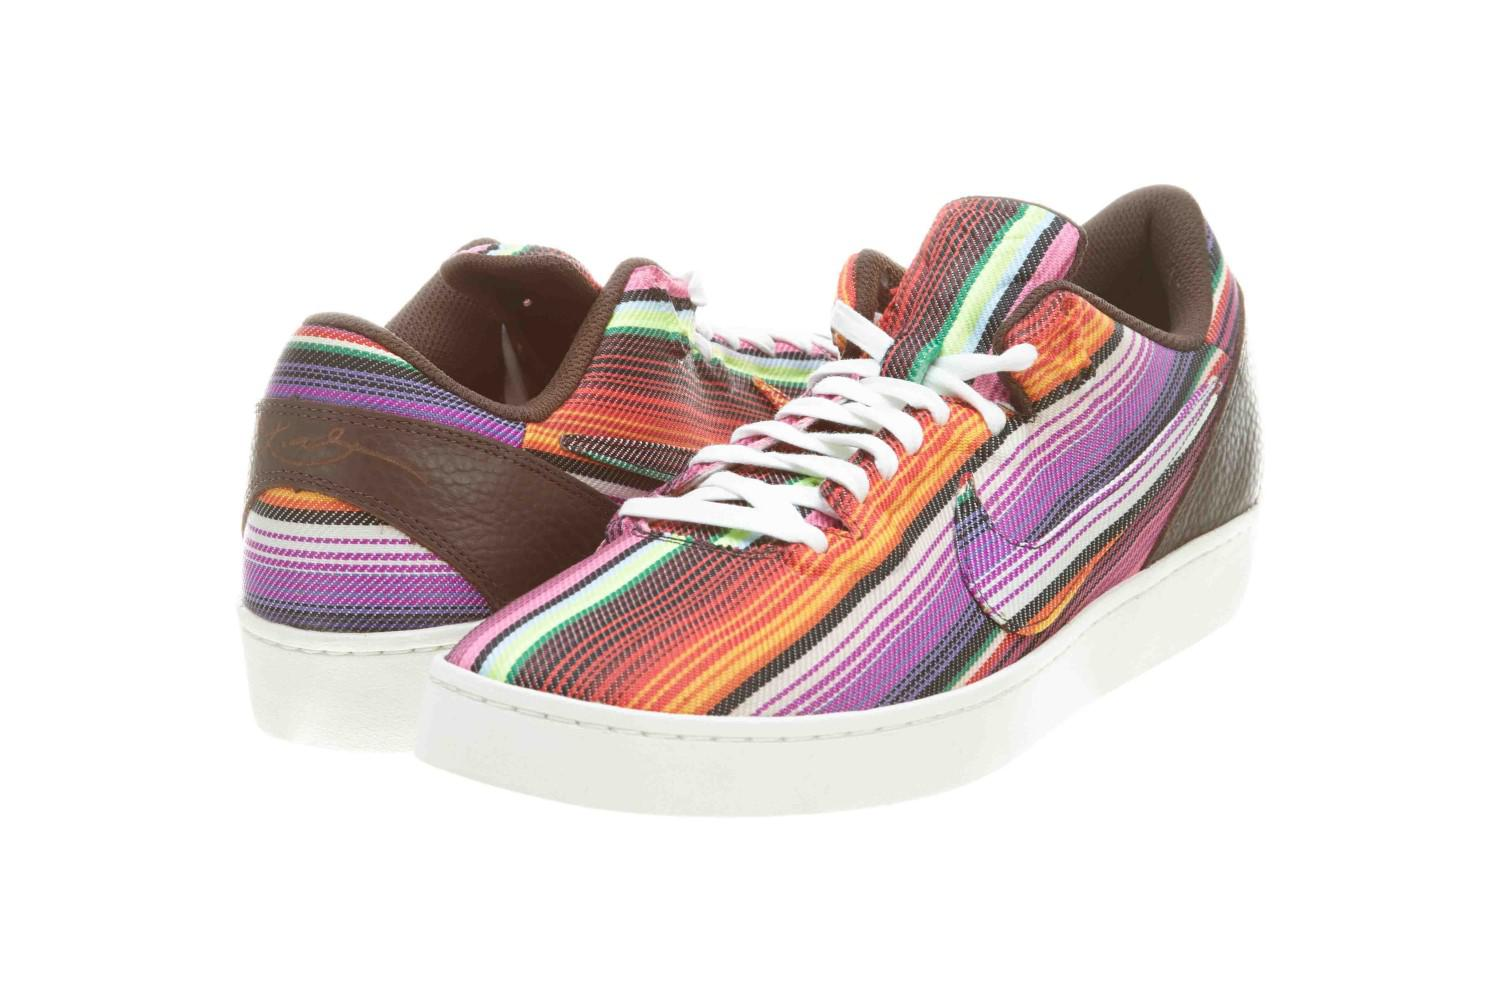 102eeaaa578c Lyst - Nike Kobe 8 Nsw Lifestyle Le  mexican Blanket  Shoes 582552 ...